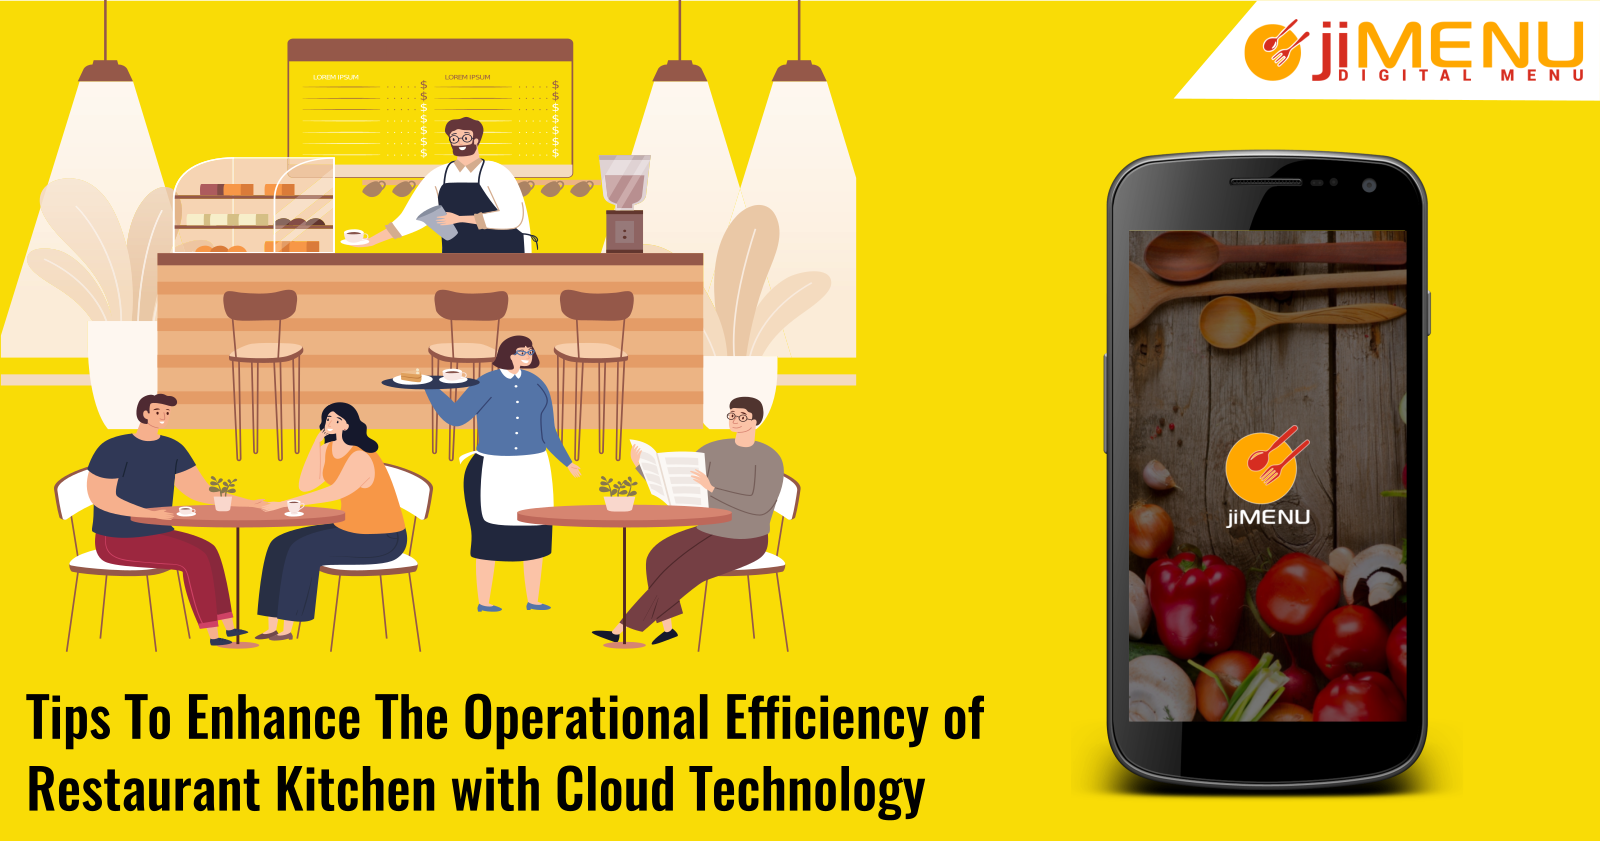 Tips To Enhance The Operational Efficiency of Restaurant Kitchen with Cloud Technology